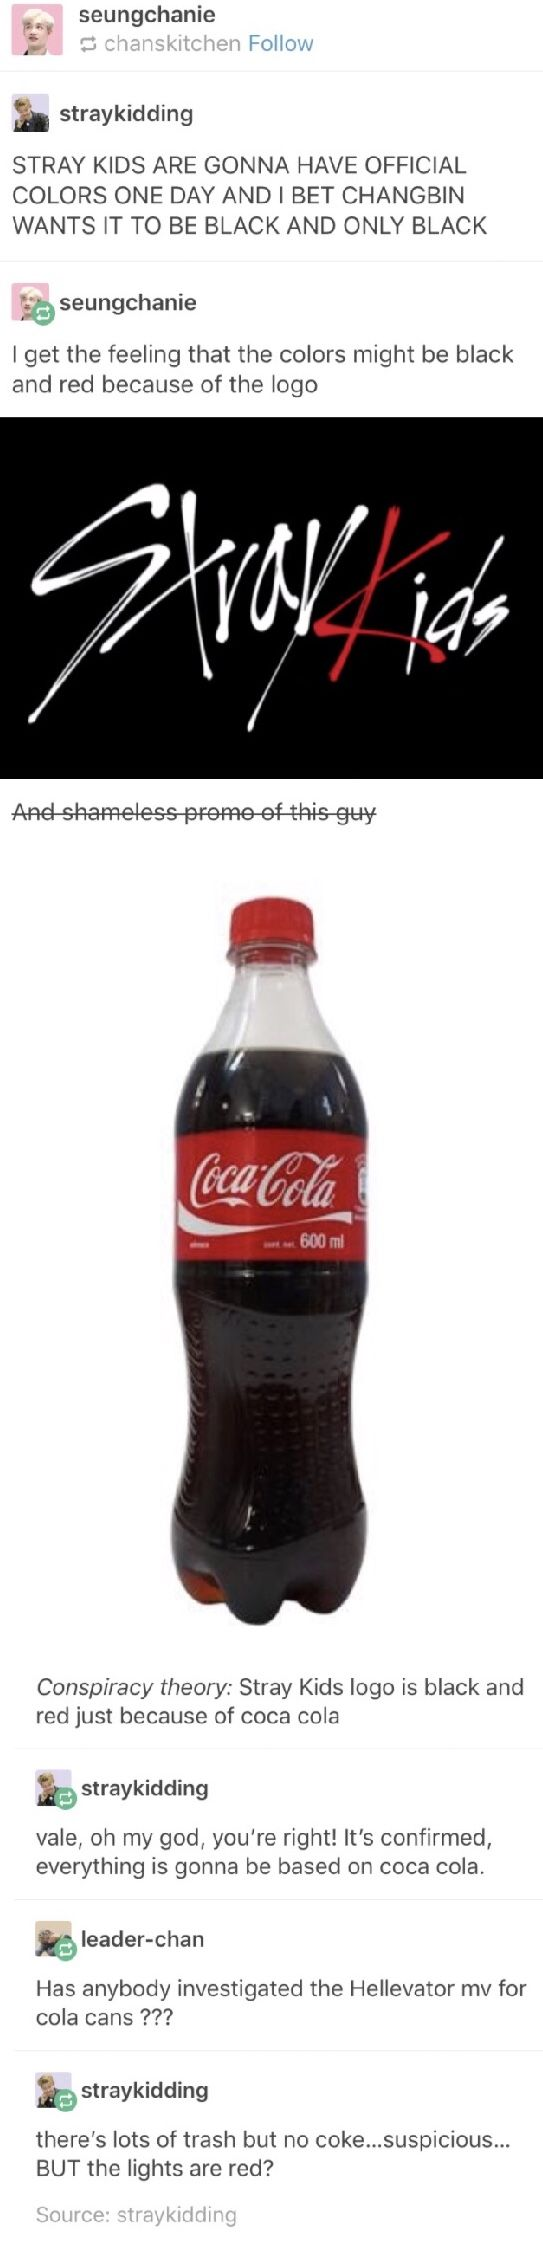 It all comes back to Coke << our fandom name's gonna end up sounding like some drug is this continues...